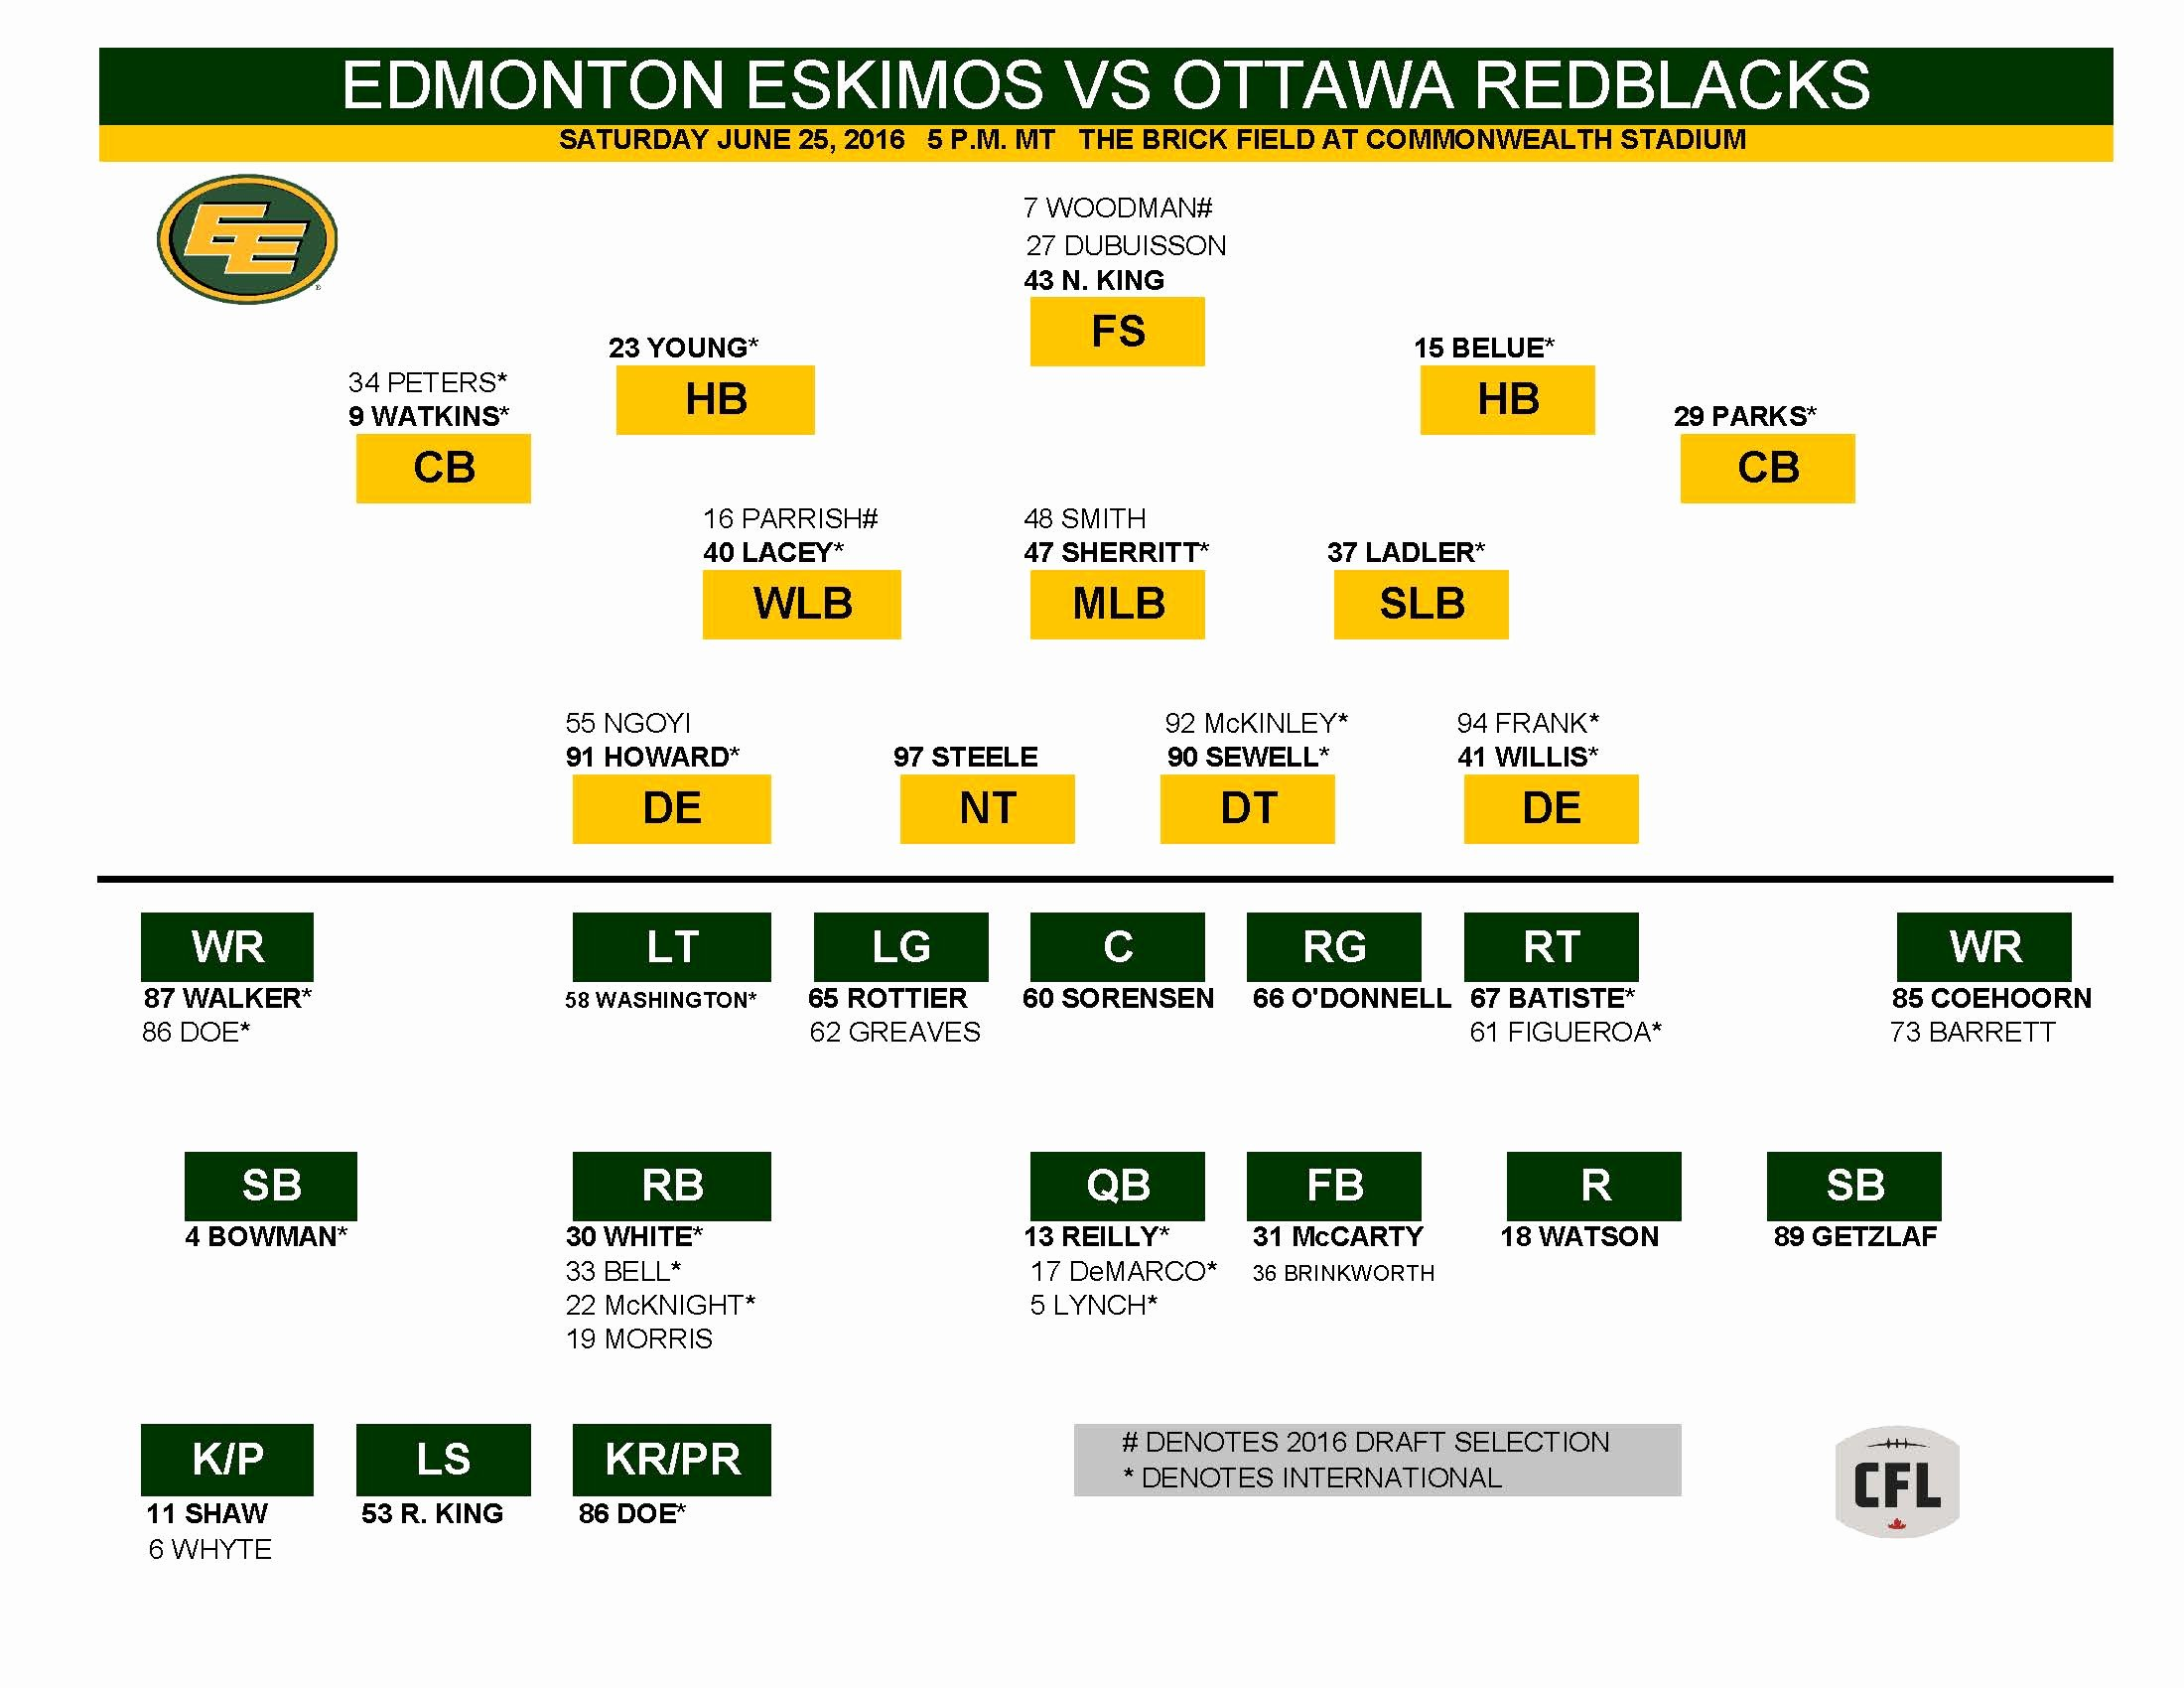 Baseball Depth Chart Template Excel Beautiful Depth Chart and Roster Edmonton Eskimos